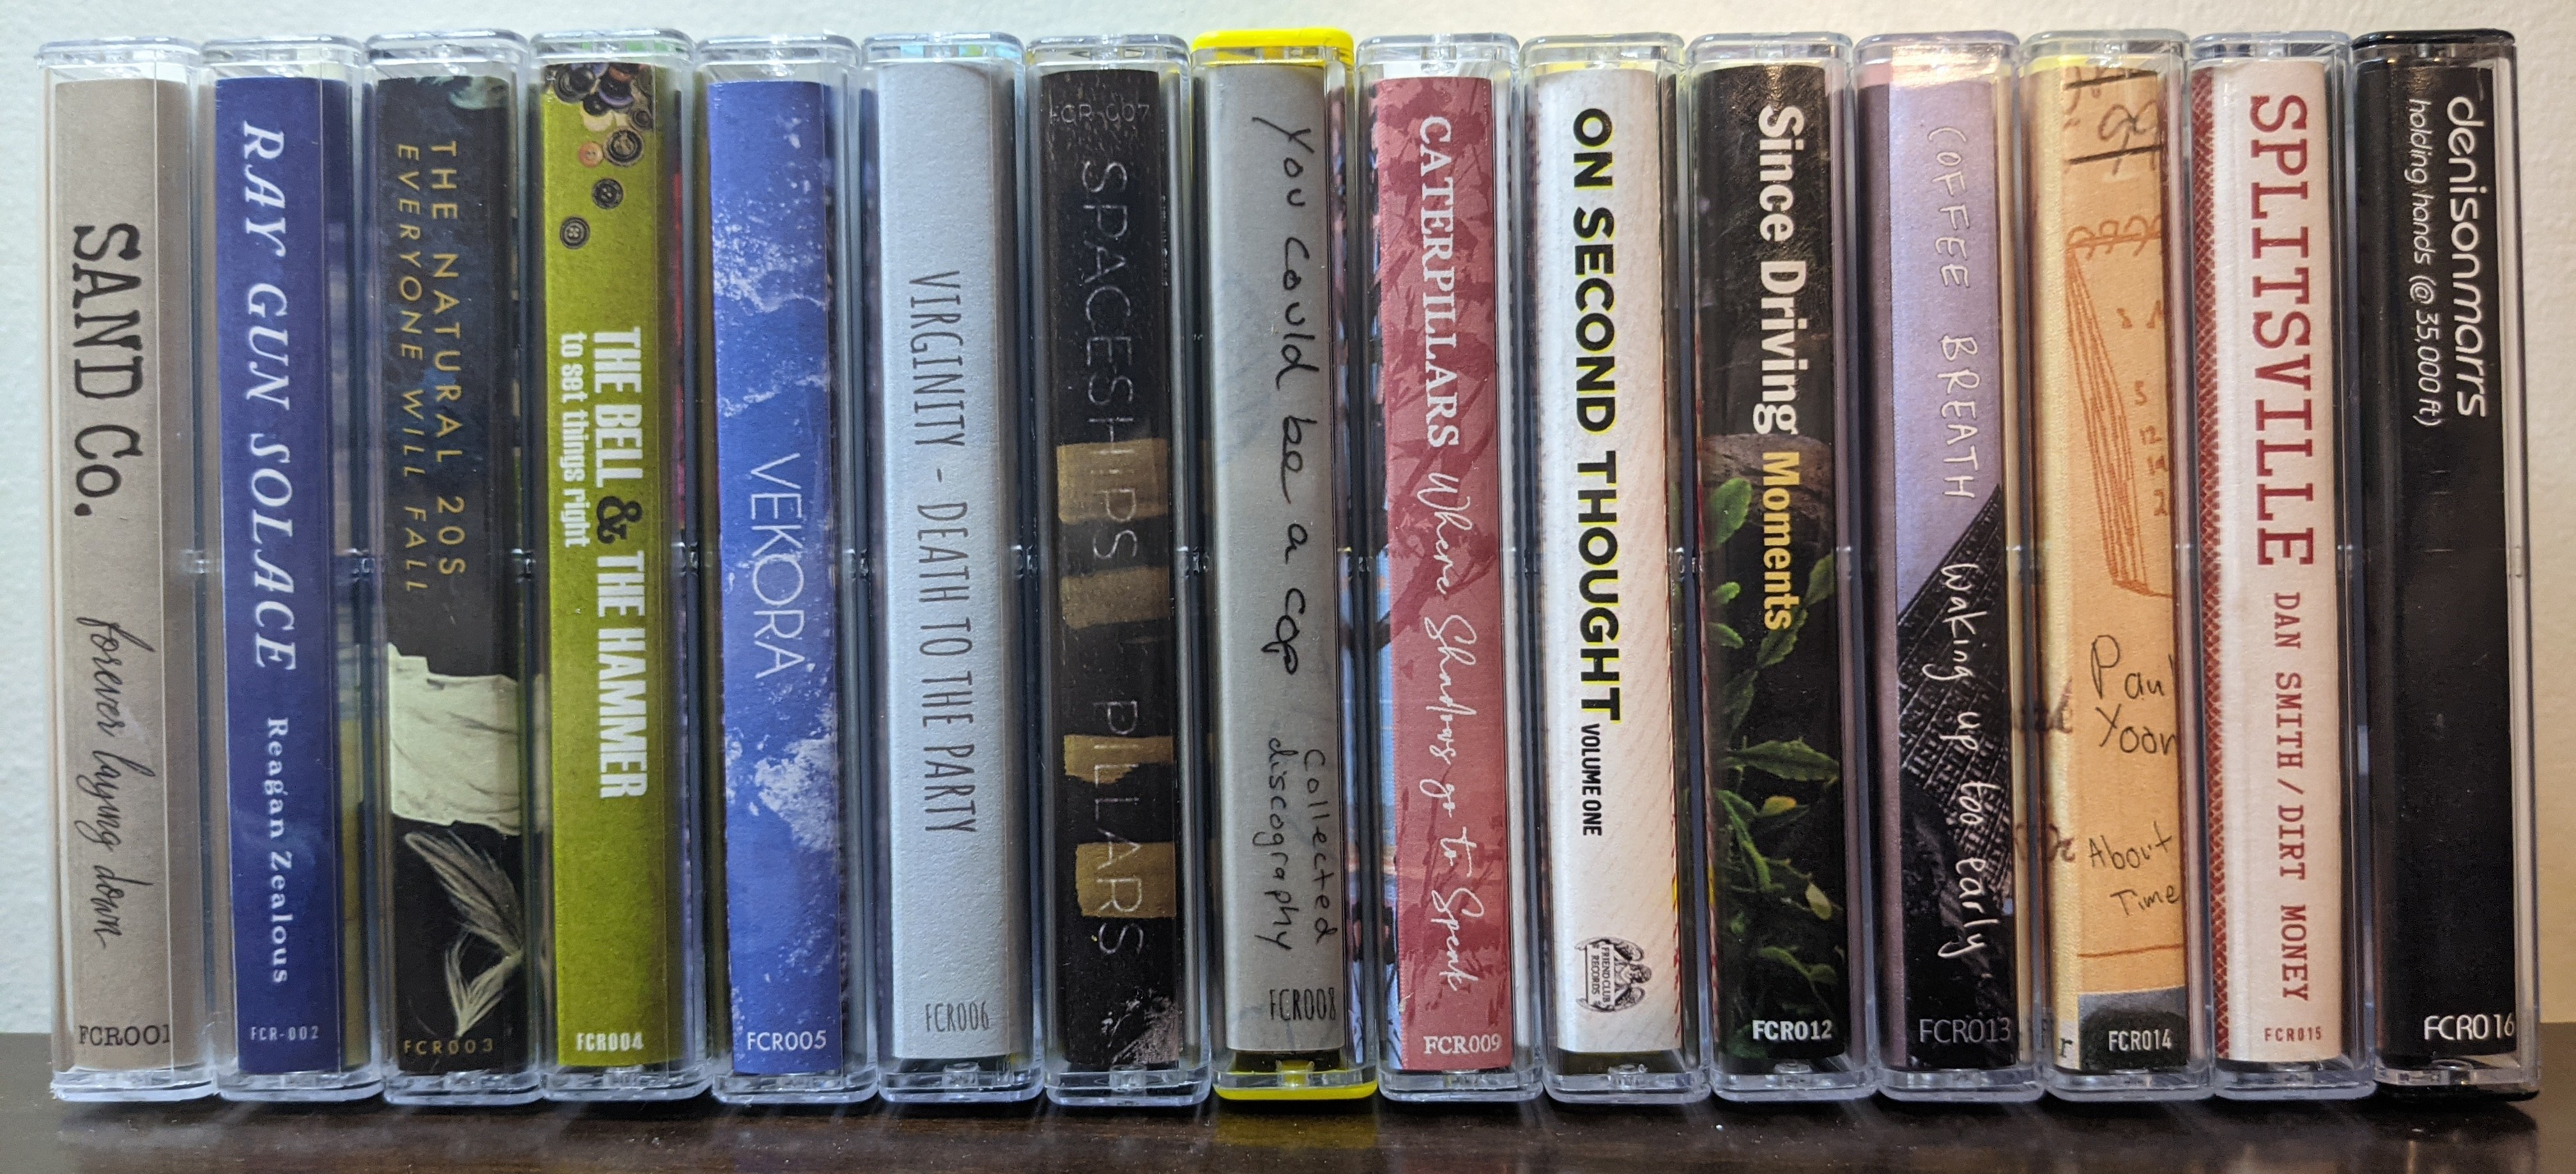 Three Tapes for Twelve Bucks